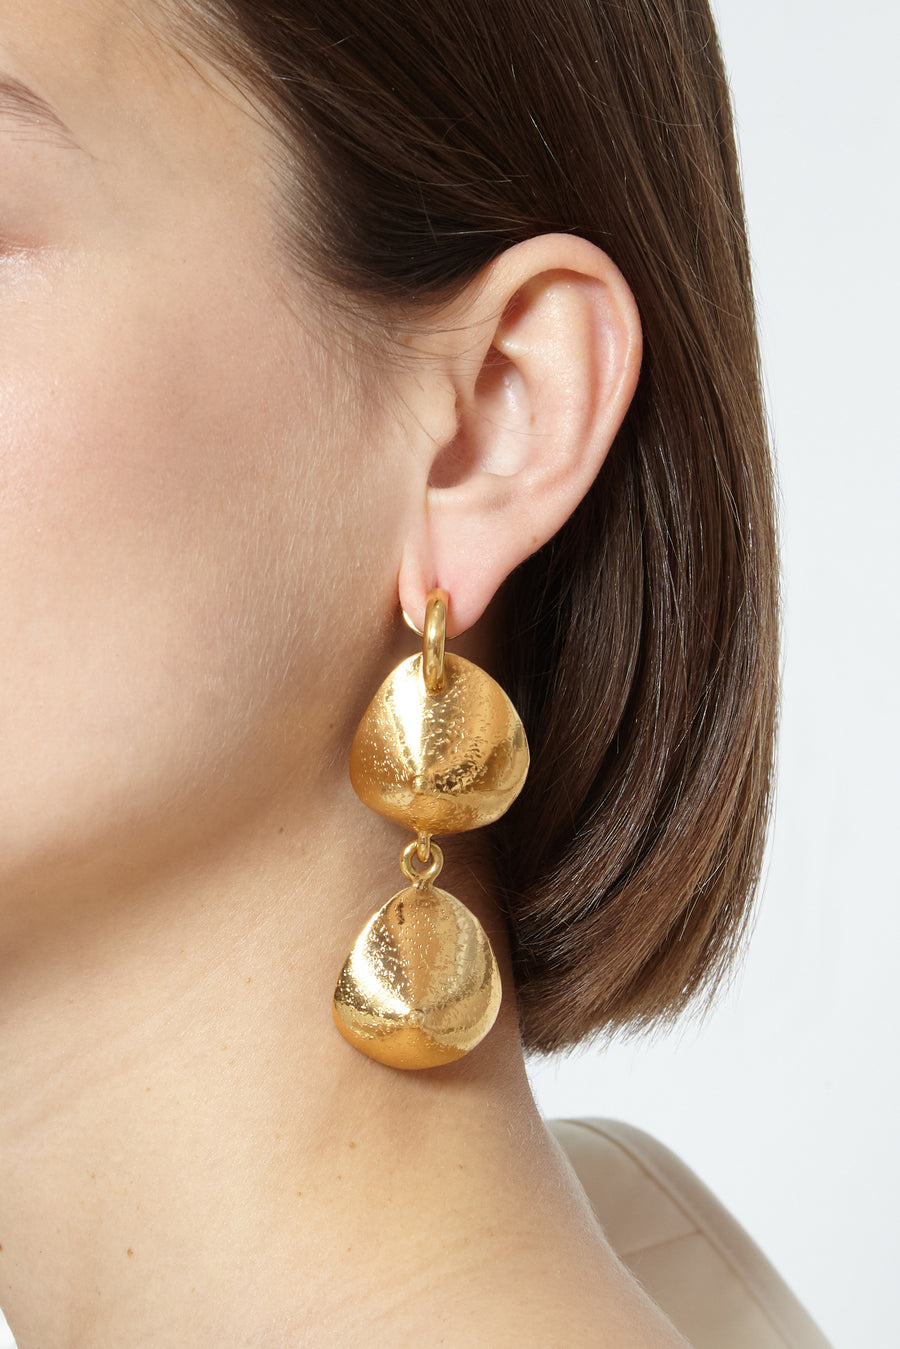 Vertuous double breast earrings